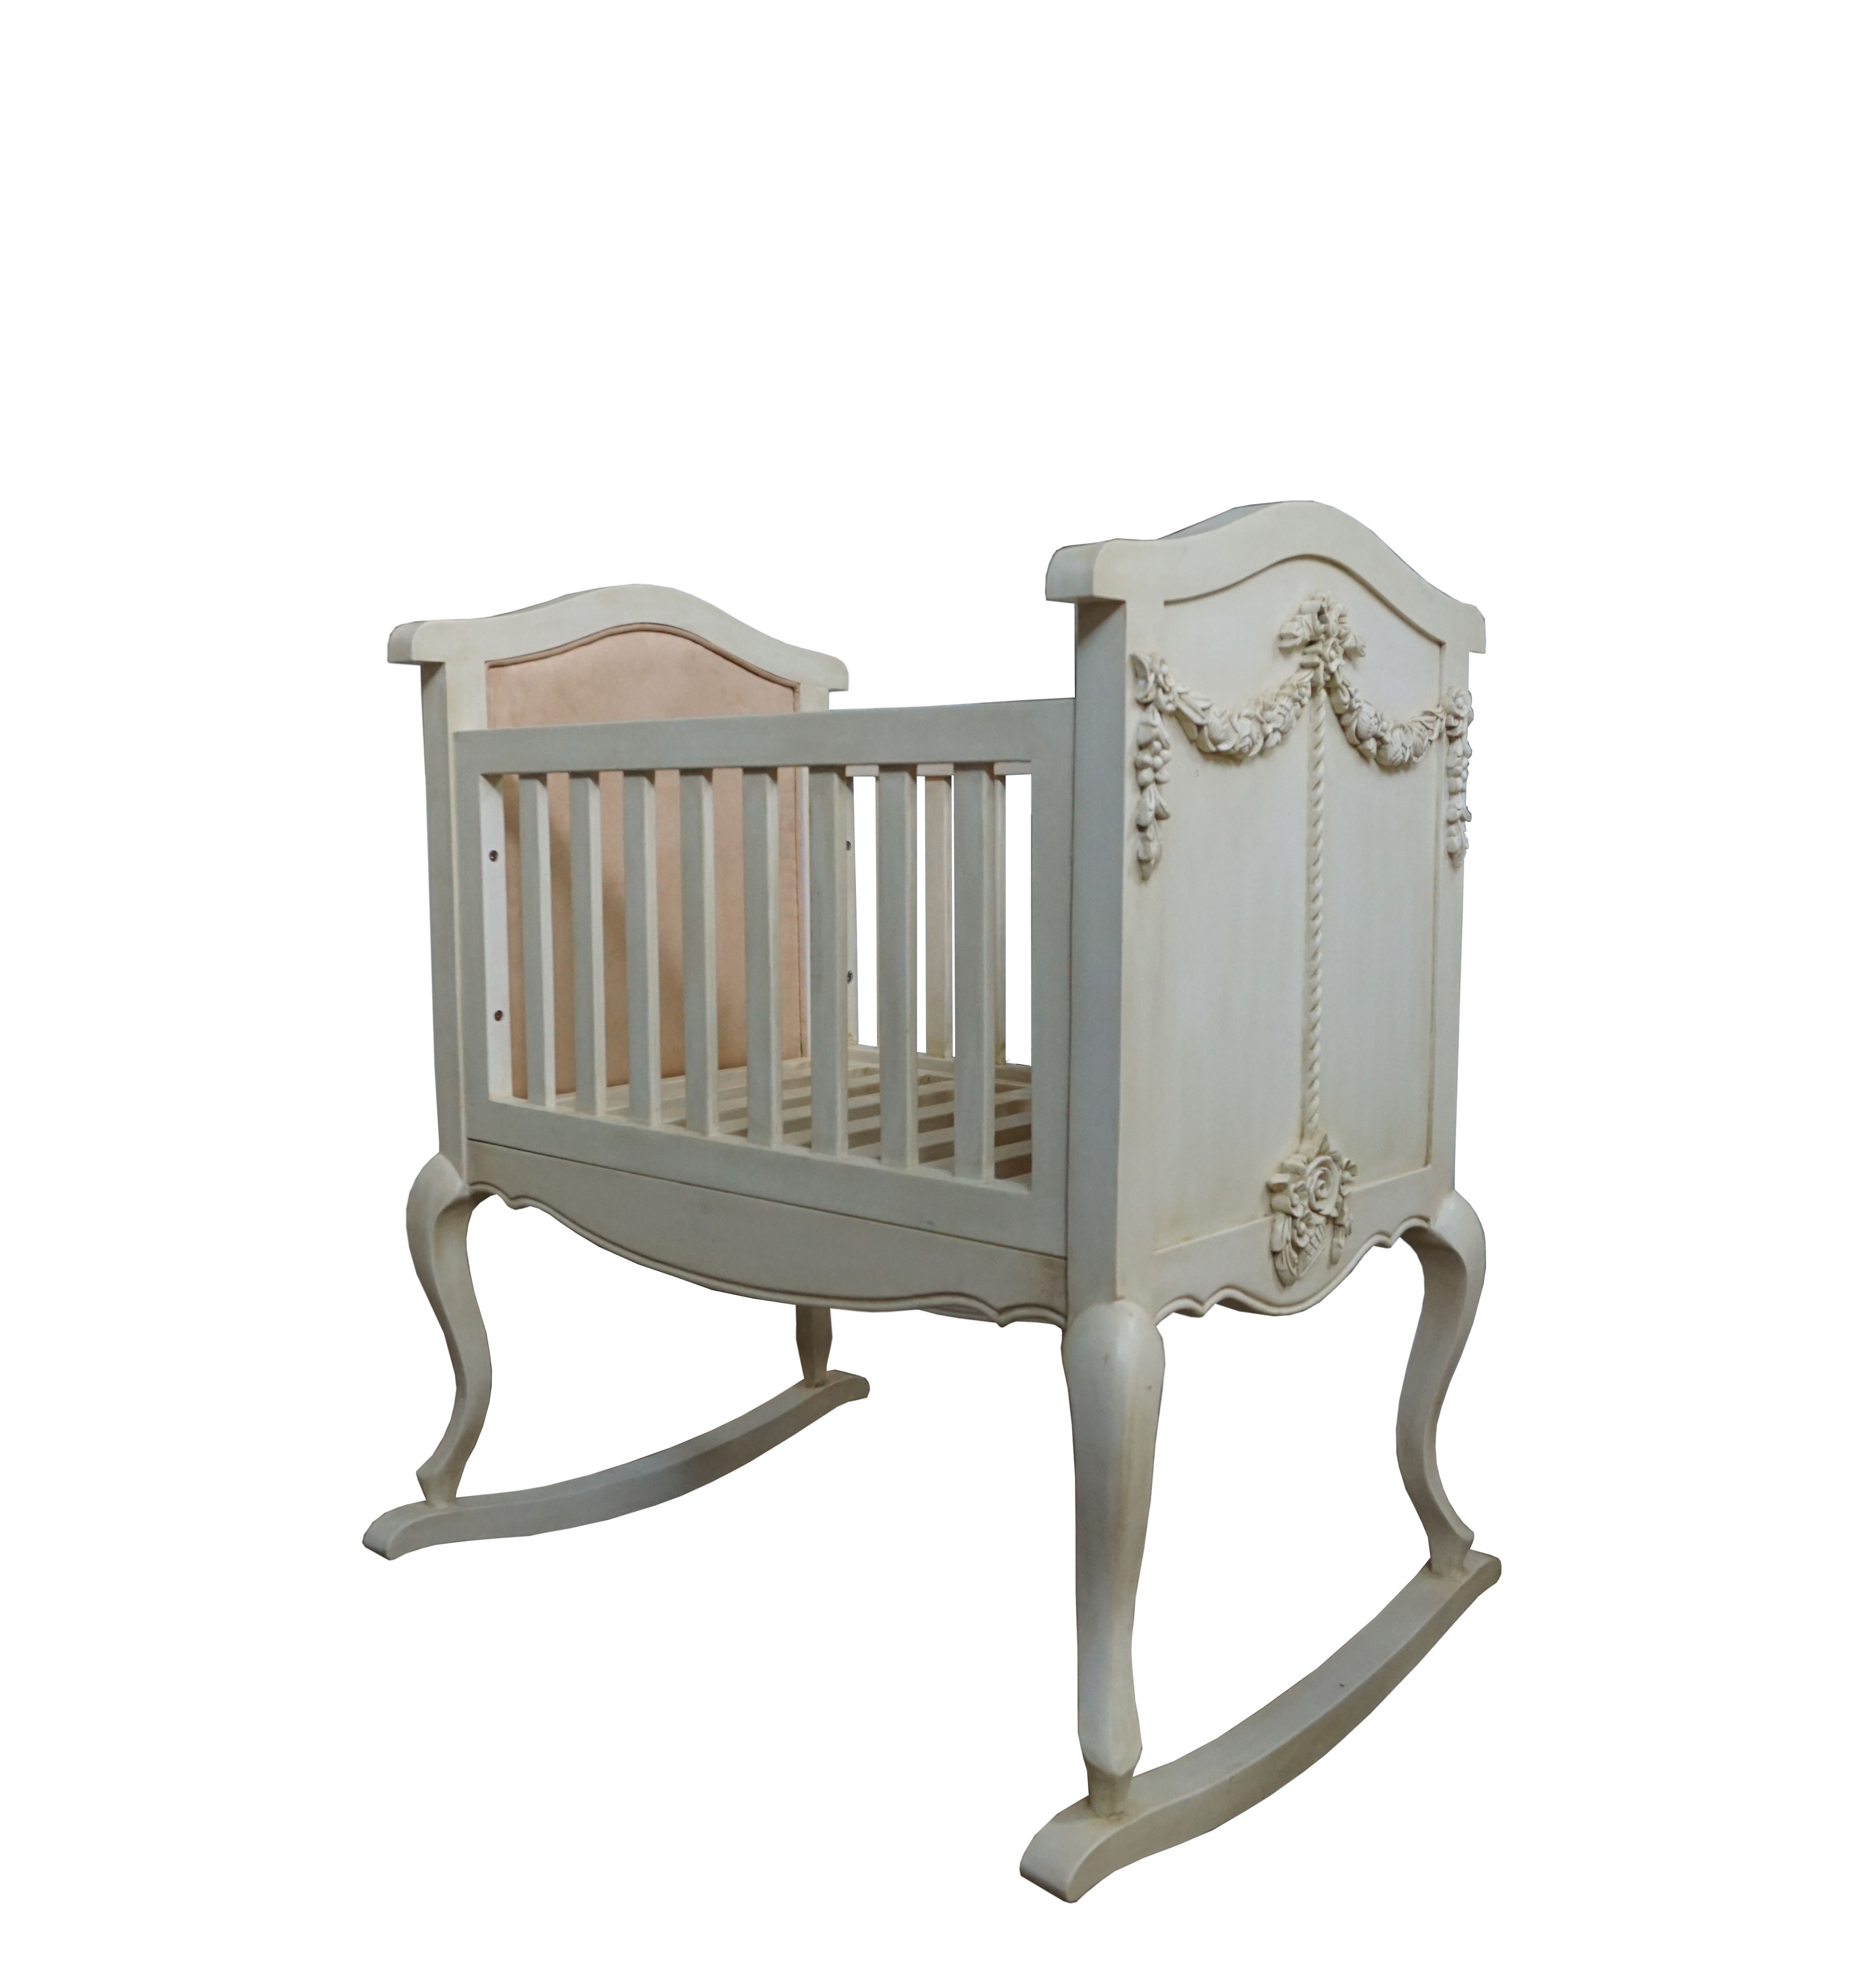 Baby Cradle With Classic Style From Mahogany Wood With Color Finishing, Low Price Baby Cradle From Wood